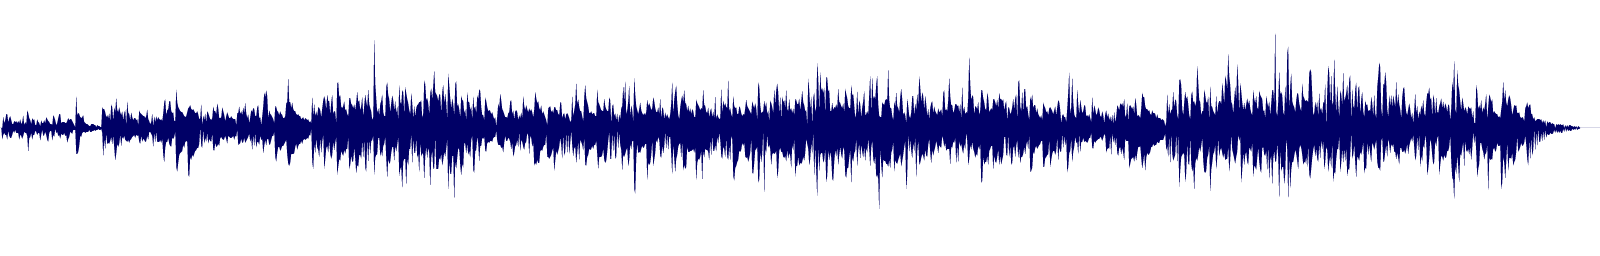 waveform of track #89964